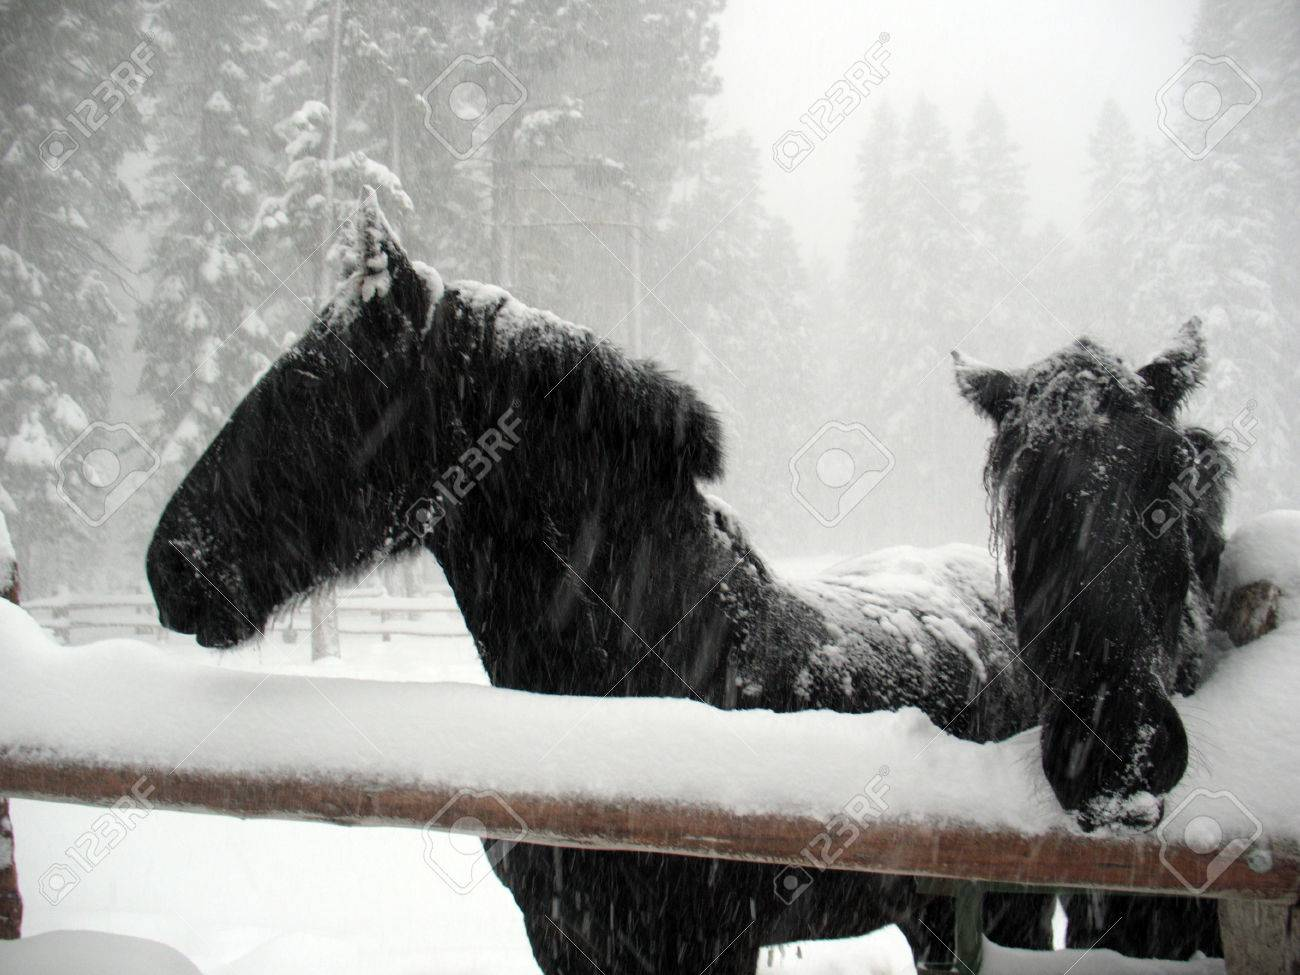 Two Black Horses Standing In Snow Stock Photo Picture And Royalty Free Image Image 63626837